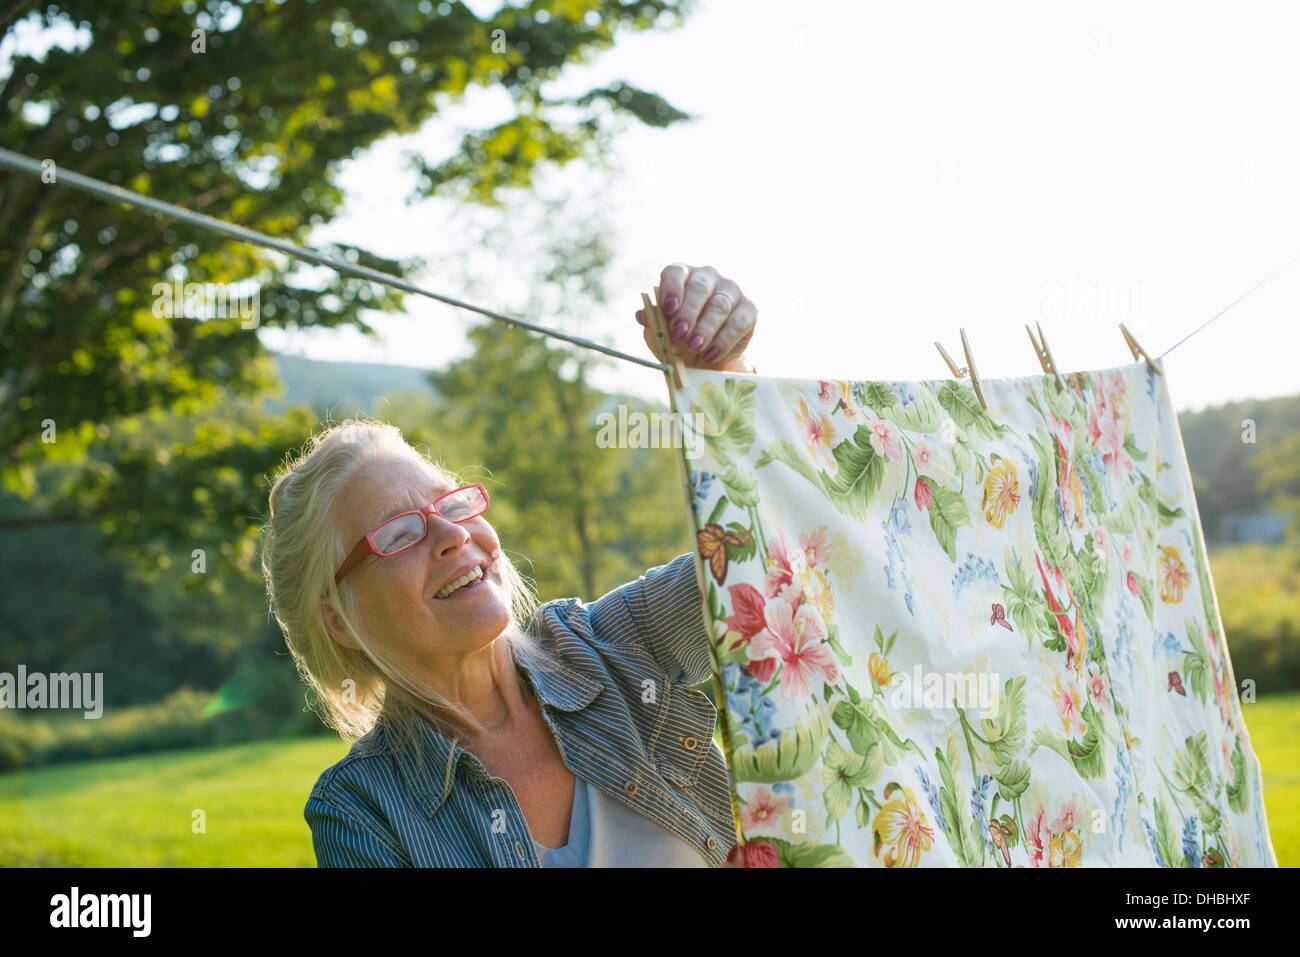 A woman hanging laundry on the washing line, in the fresh air. - Stock Image